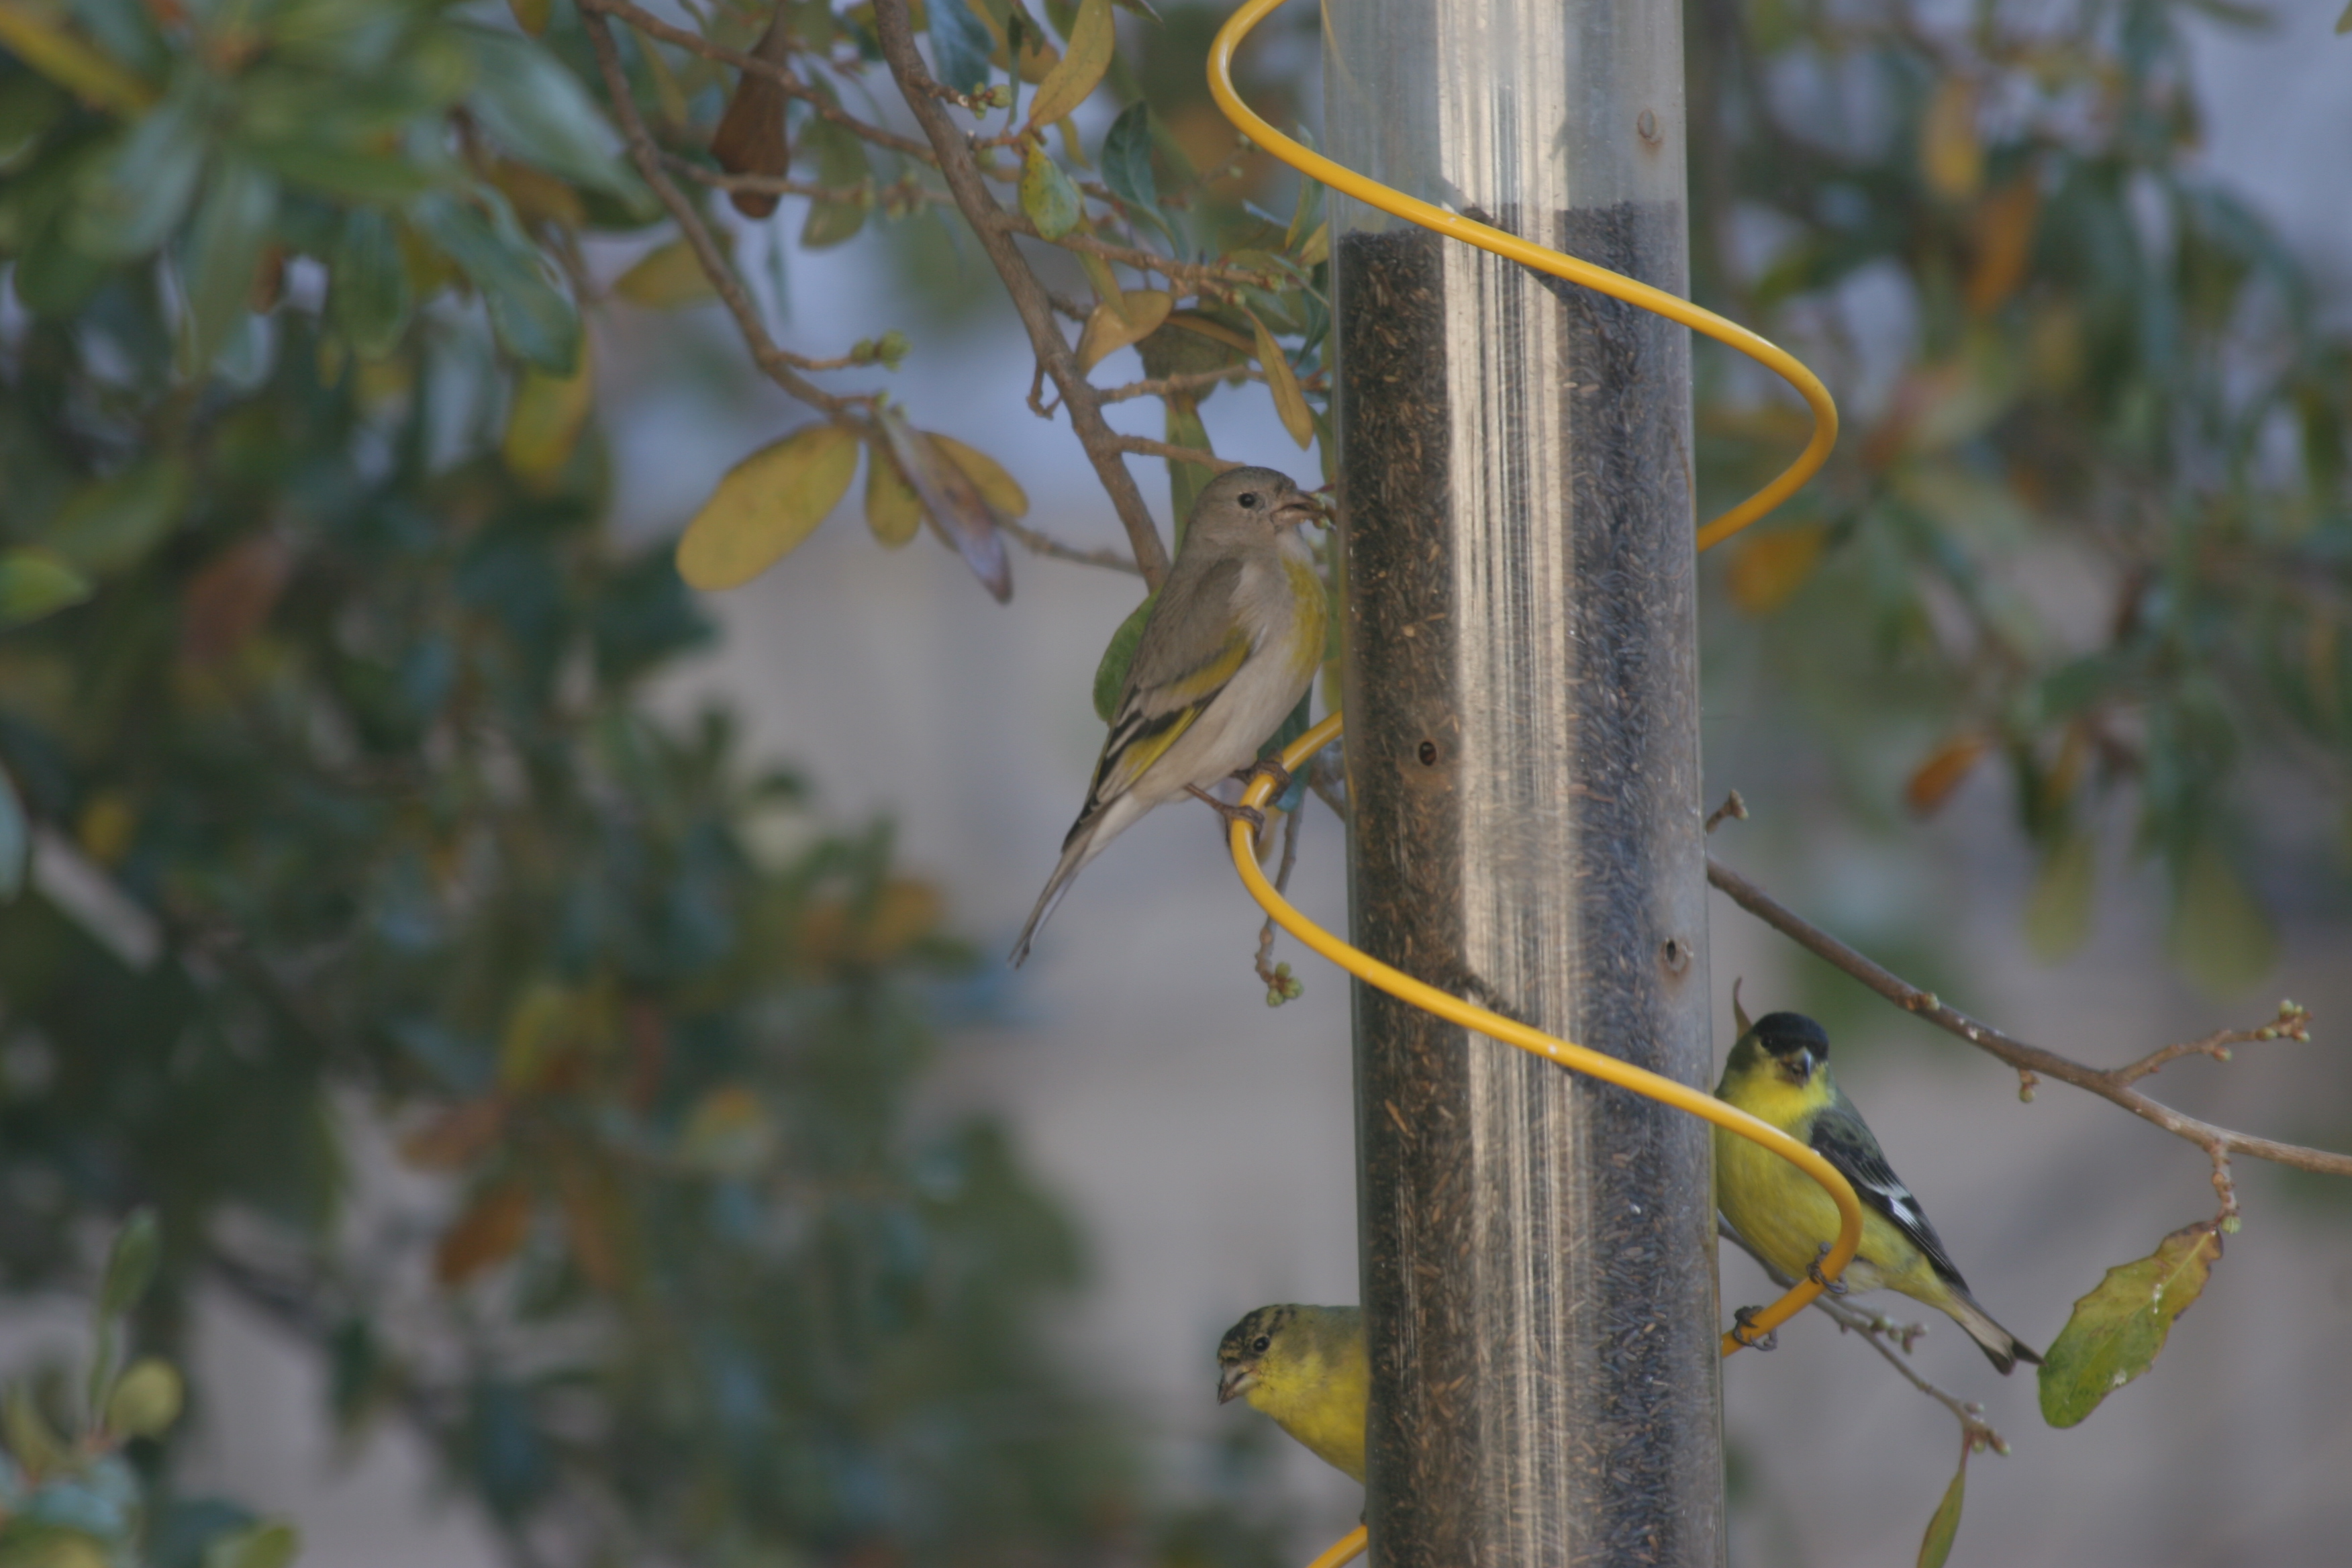 feeders product wbird cfm feeder at recycled magnet wild gs drs and prod thistle foster mesh bird display nyjer smith